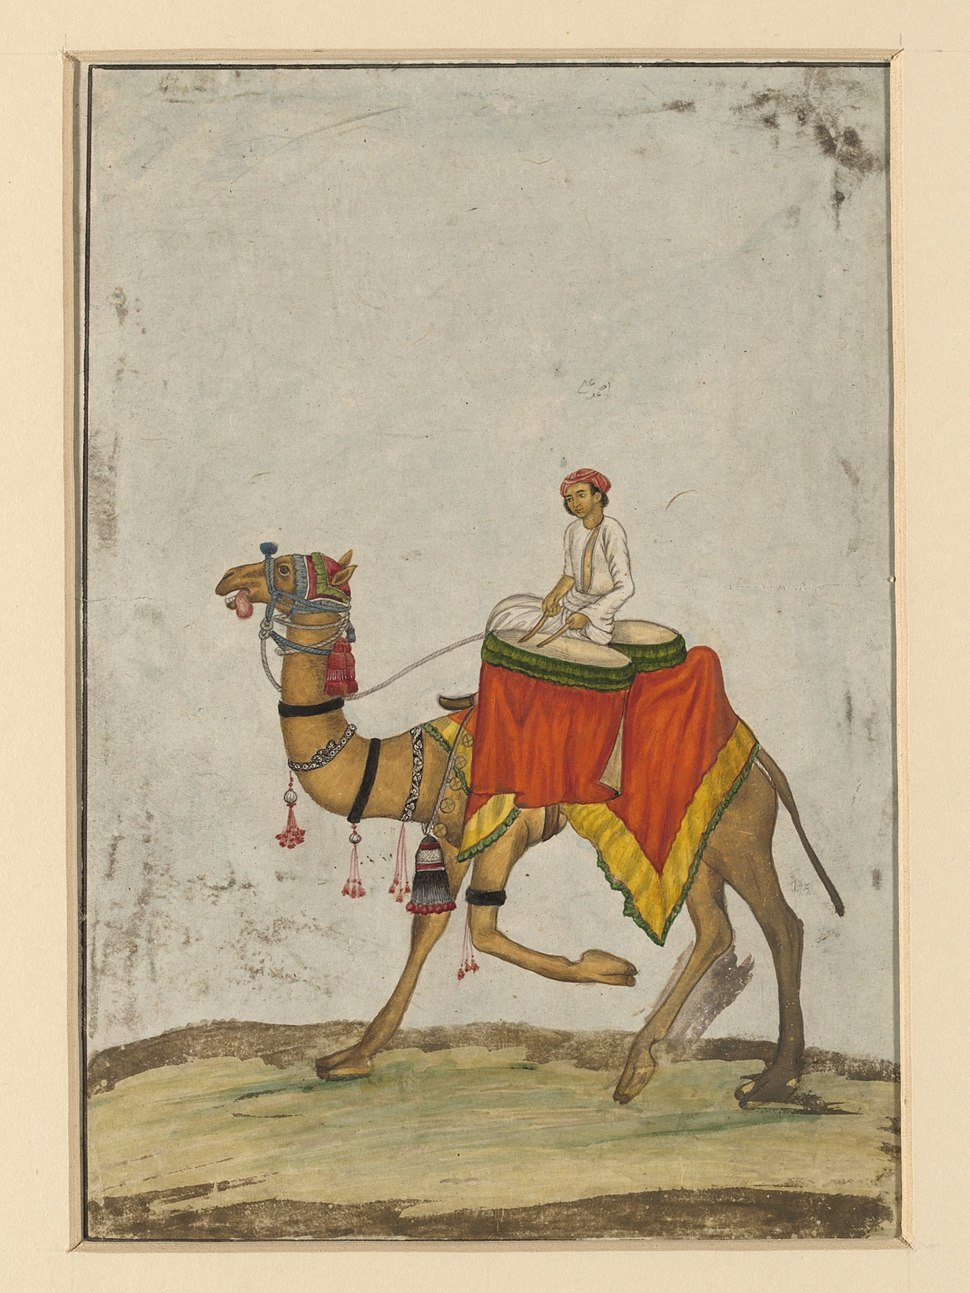 A camel with its rider playing kettle drums.